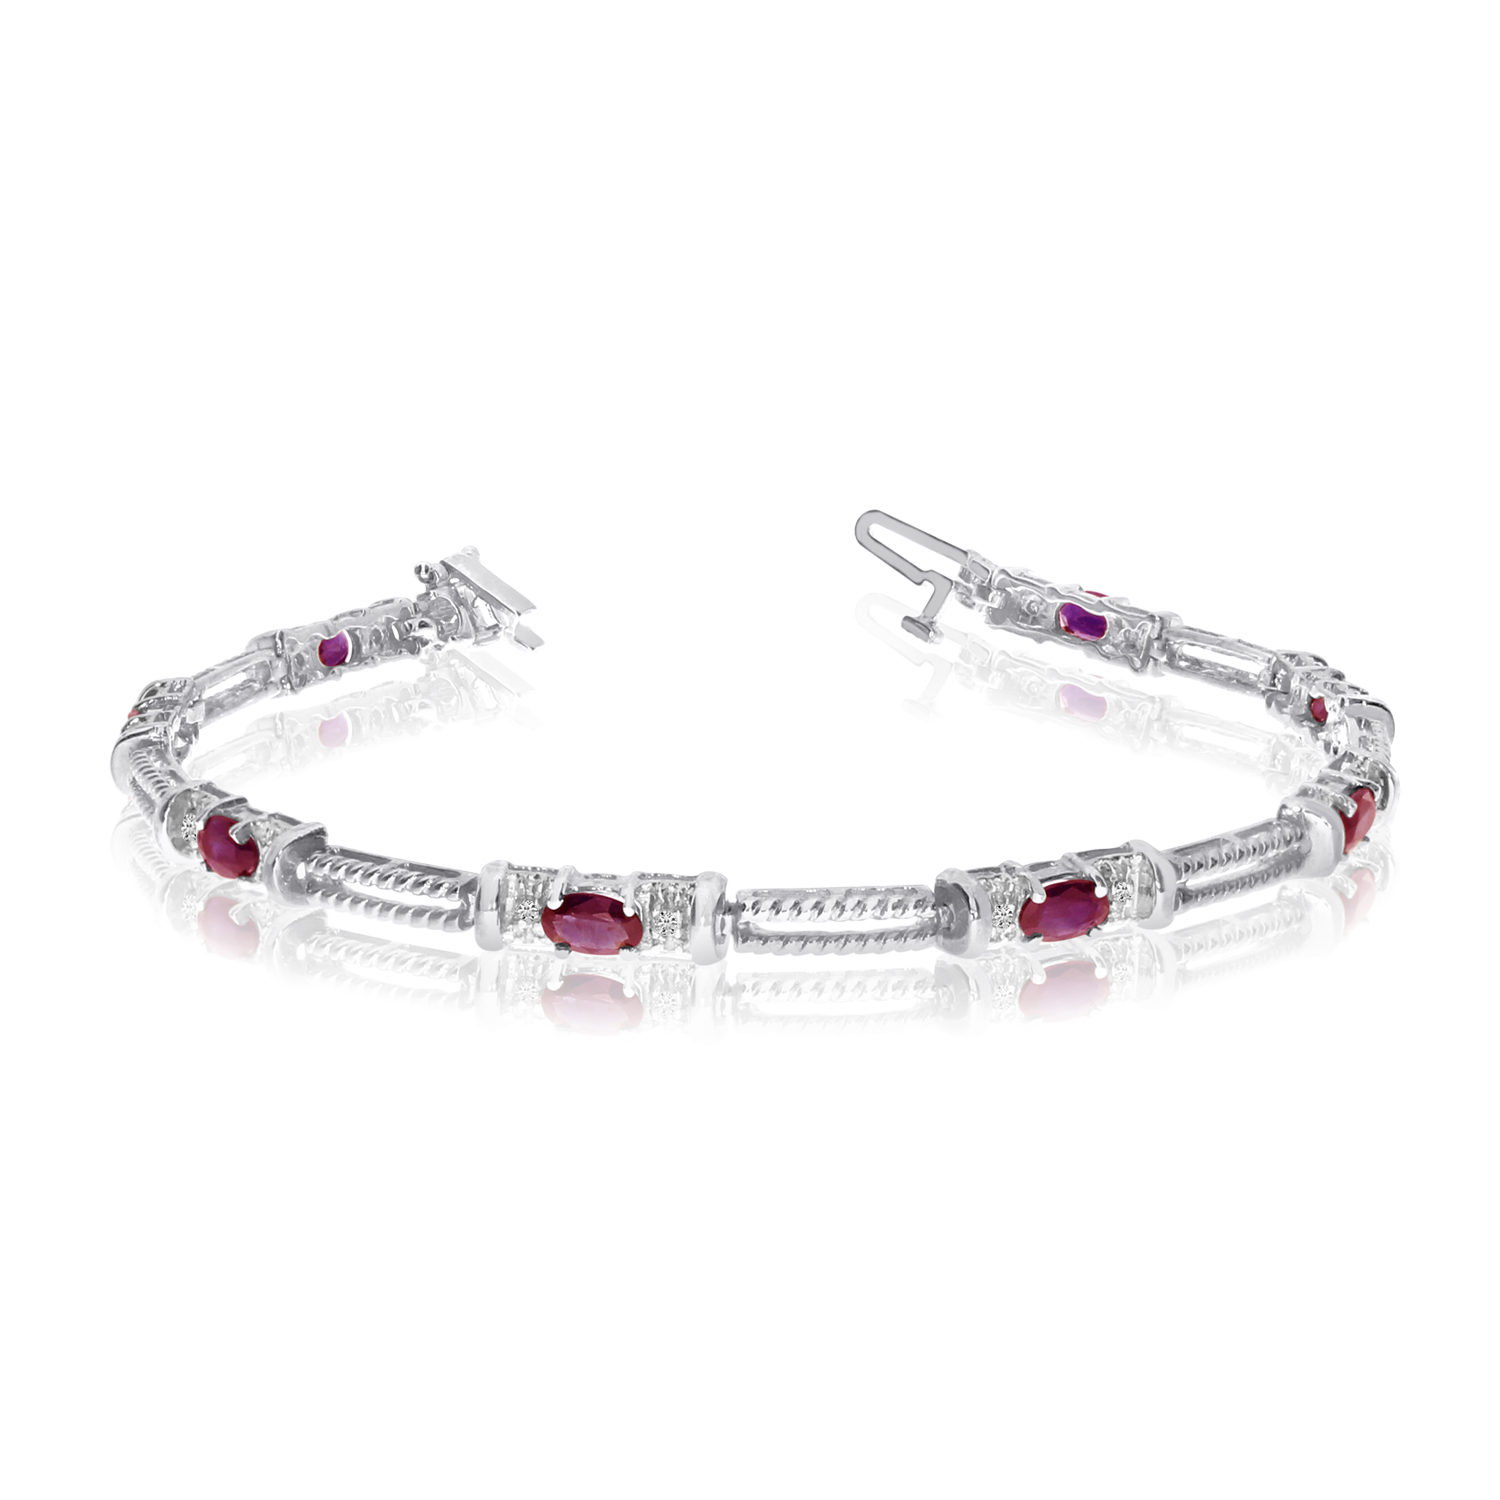 Direct-Jewelry 10k White Gold Natural Ruby And Diamond Tennis Bracelet